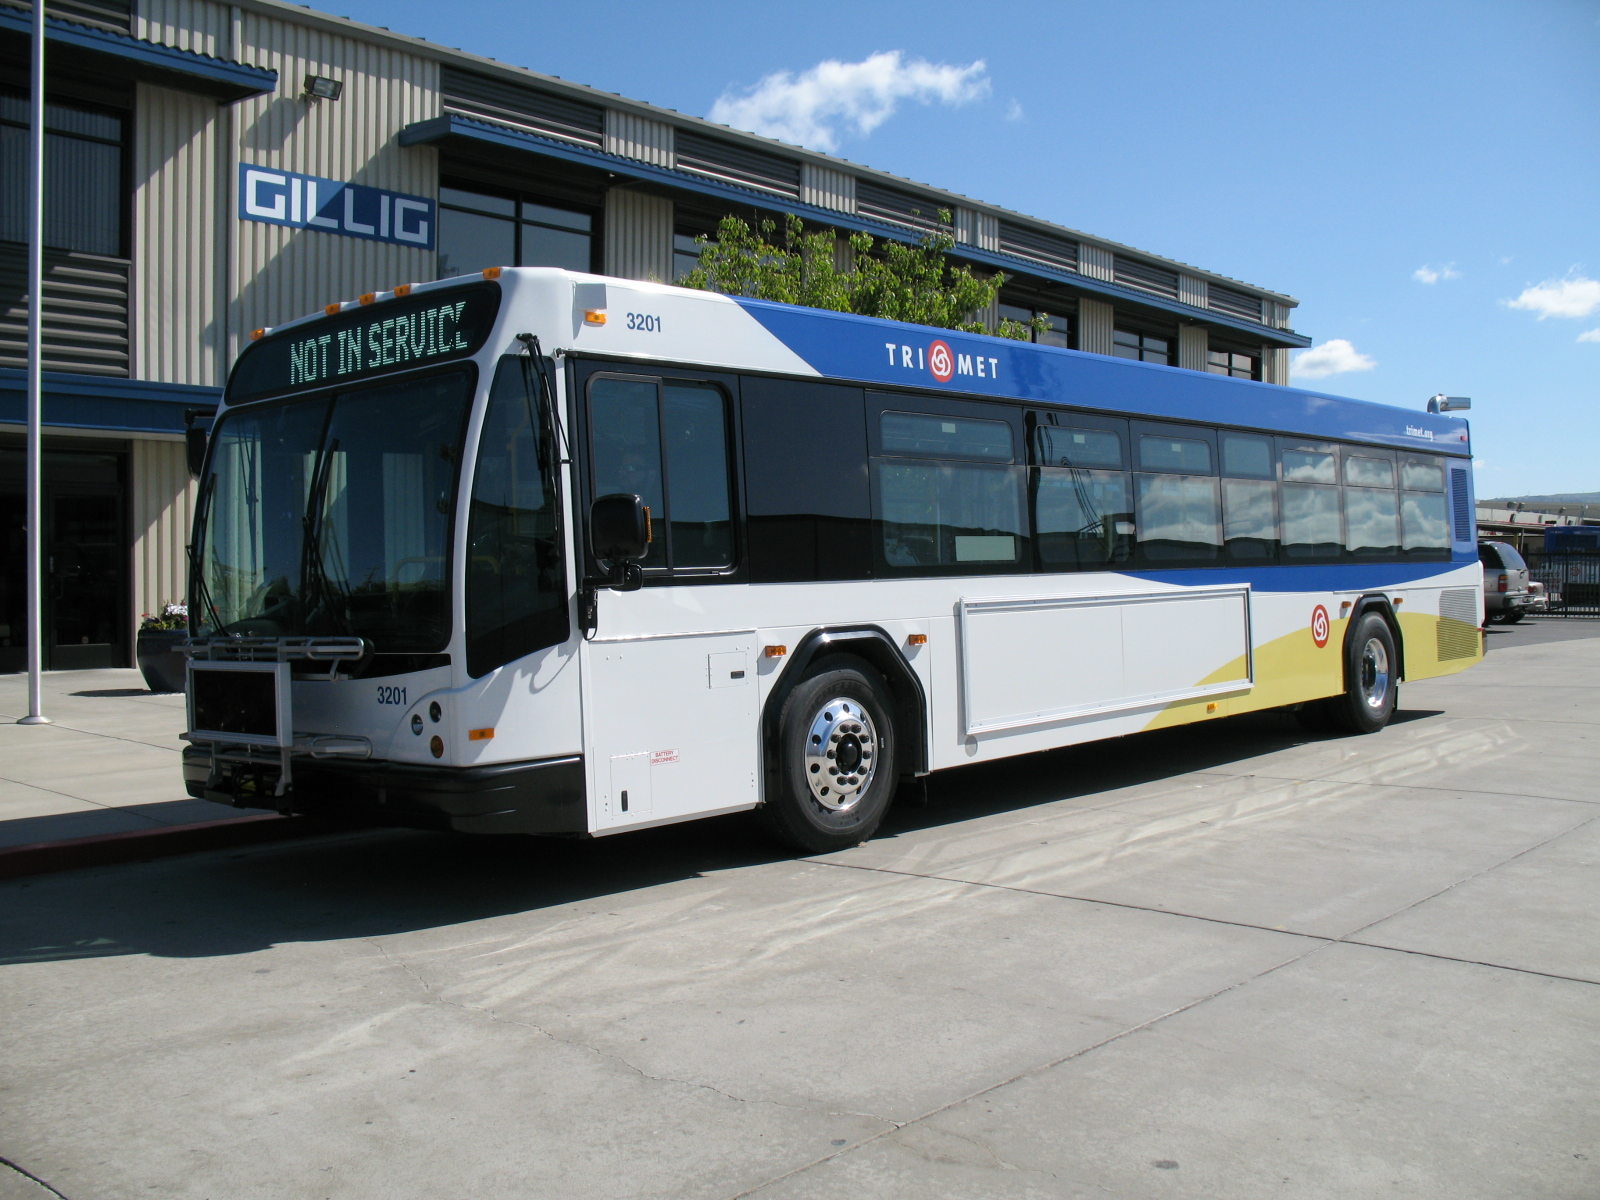 as new trimet buses roll off the assembly line, old buses get